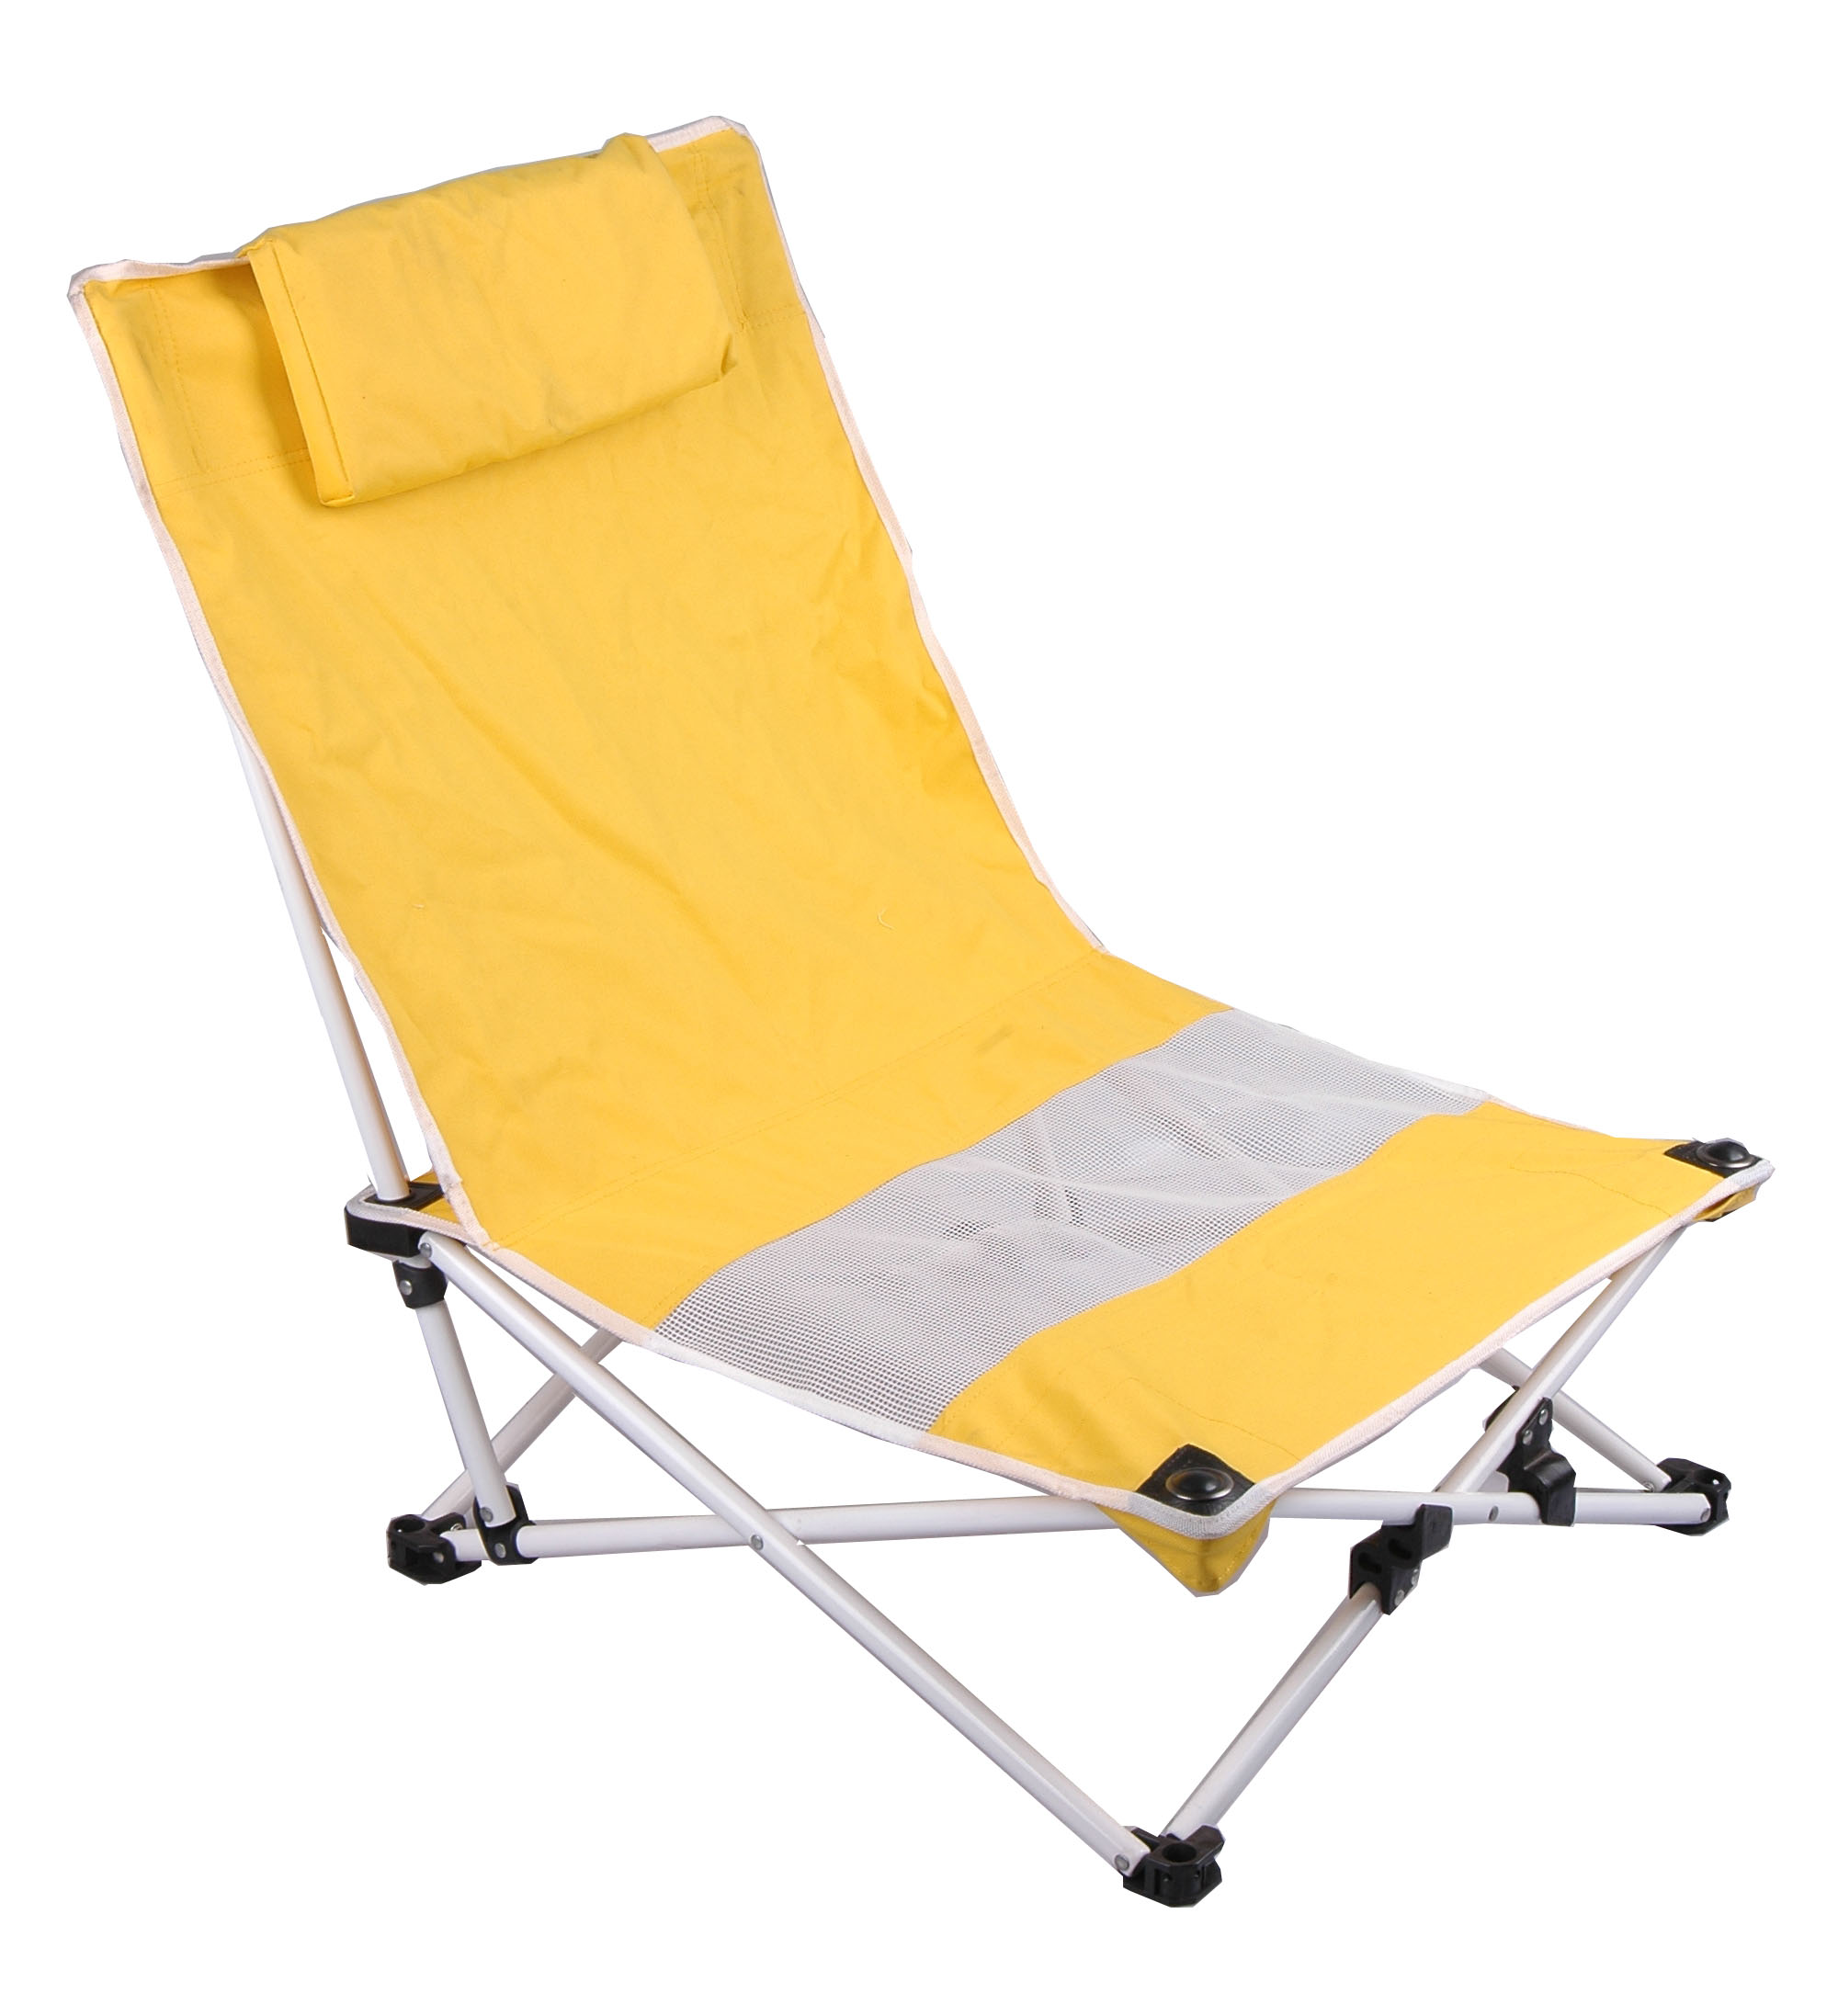 Beach lounge chair portable - Folding Camping Chair Lawn Chairs Camping Chair Portable Chair Beach Chair